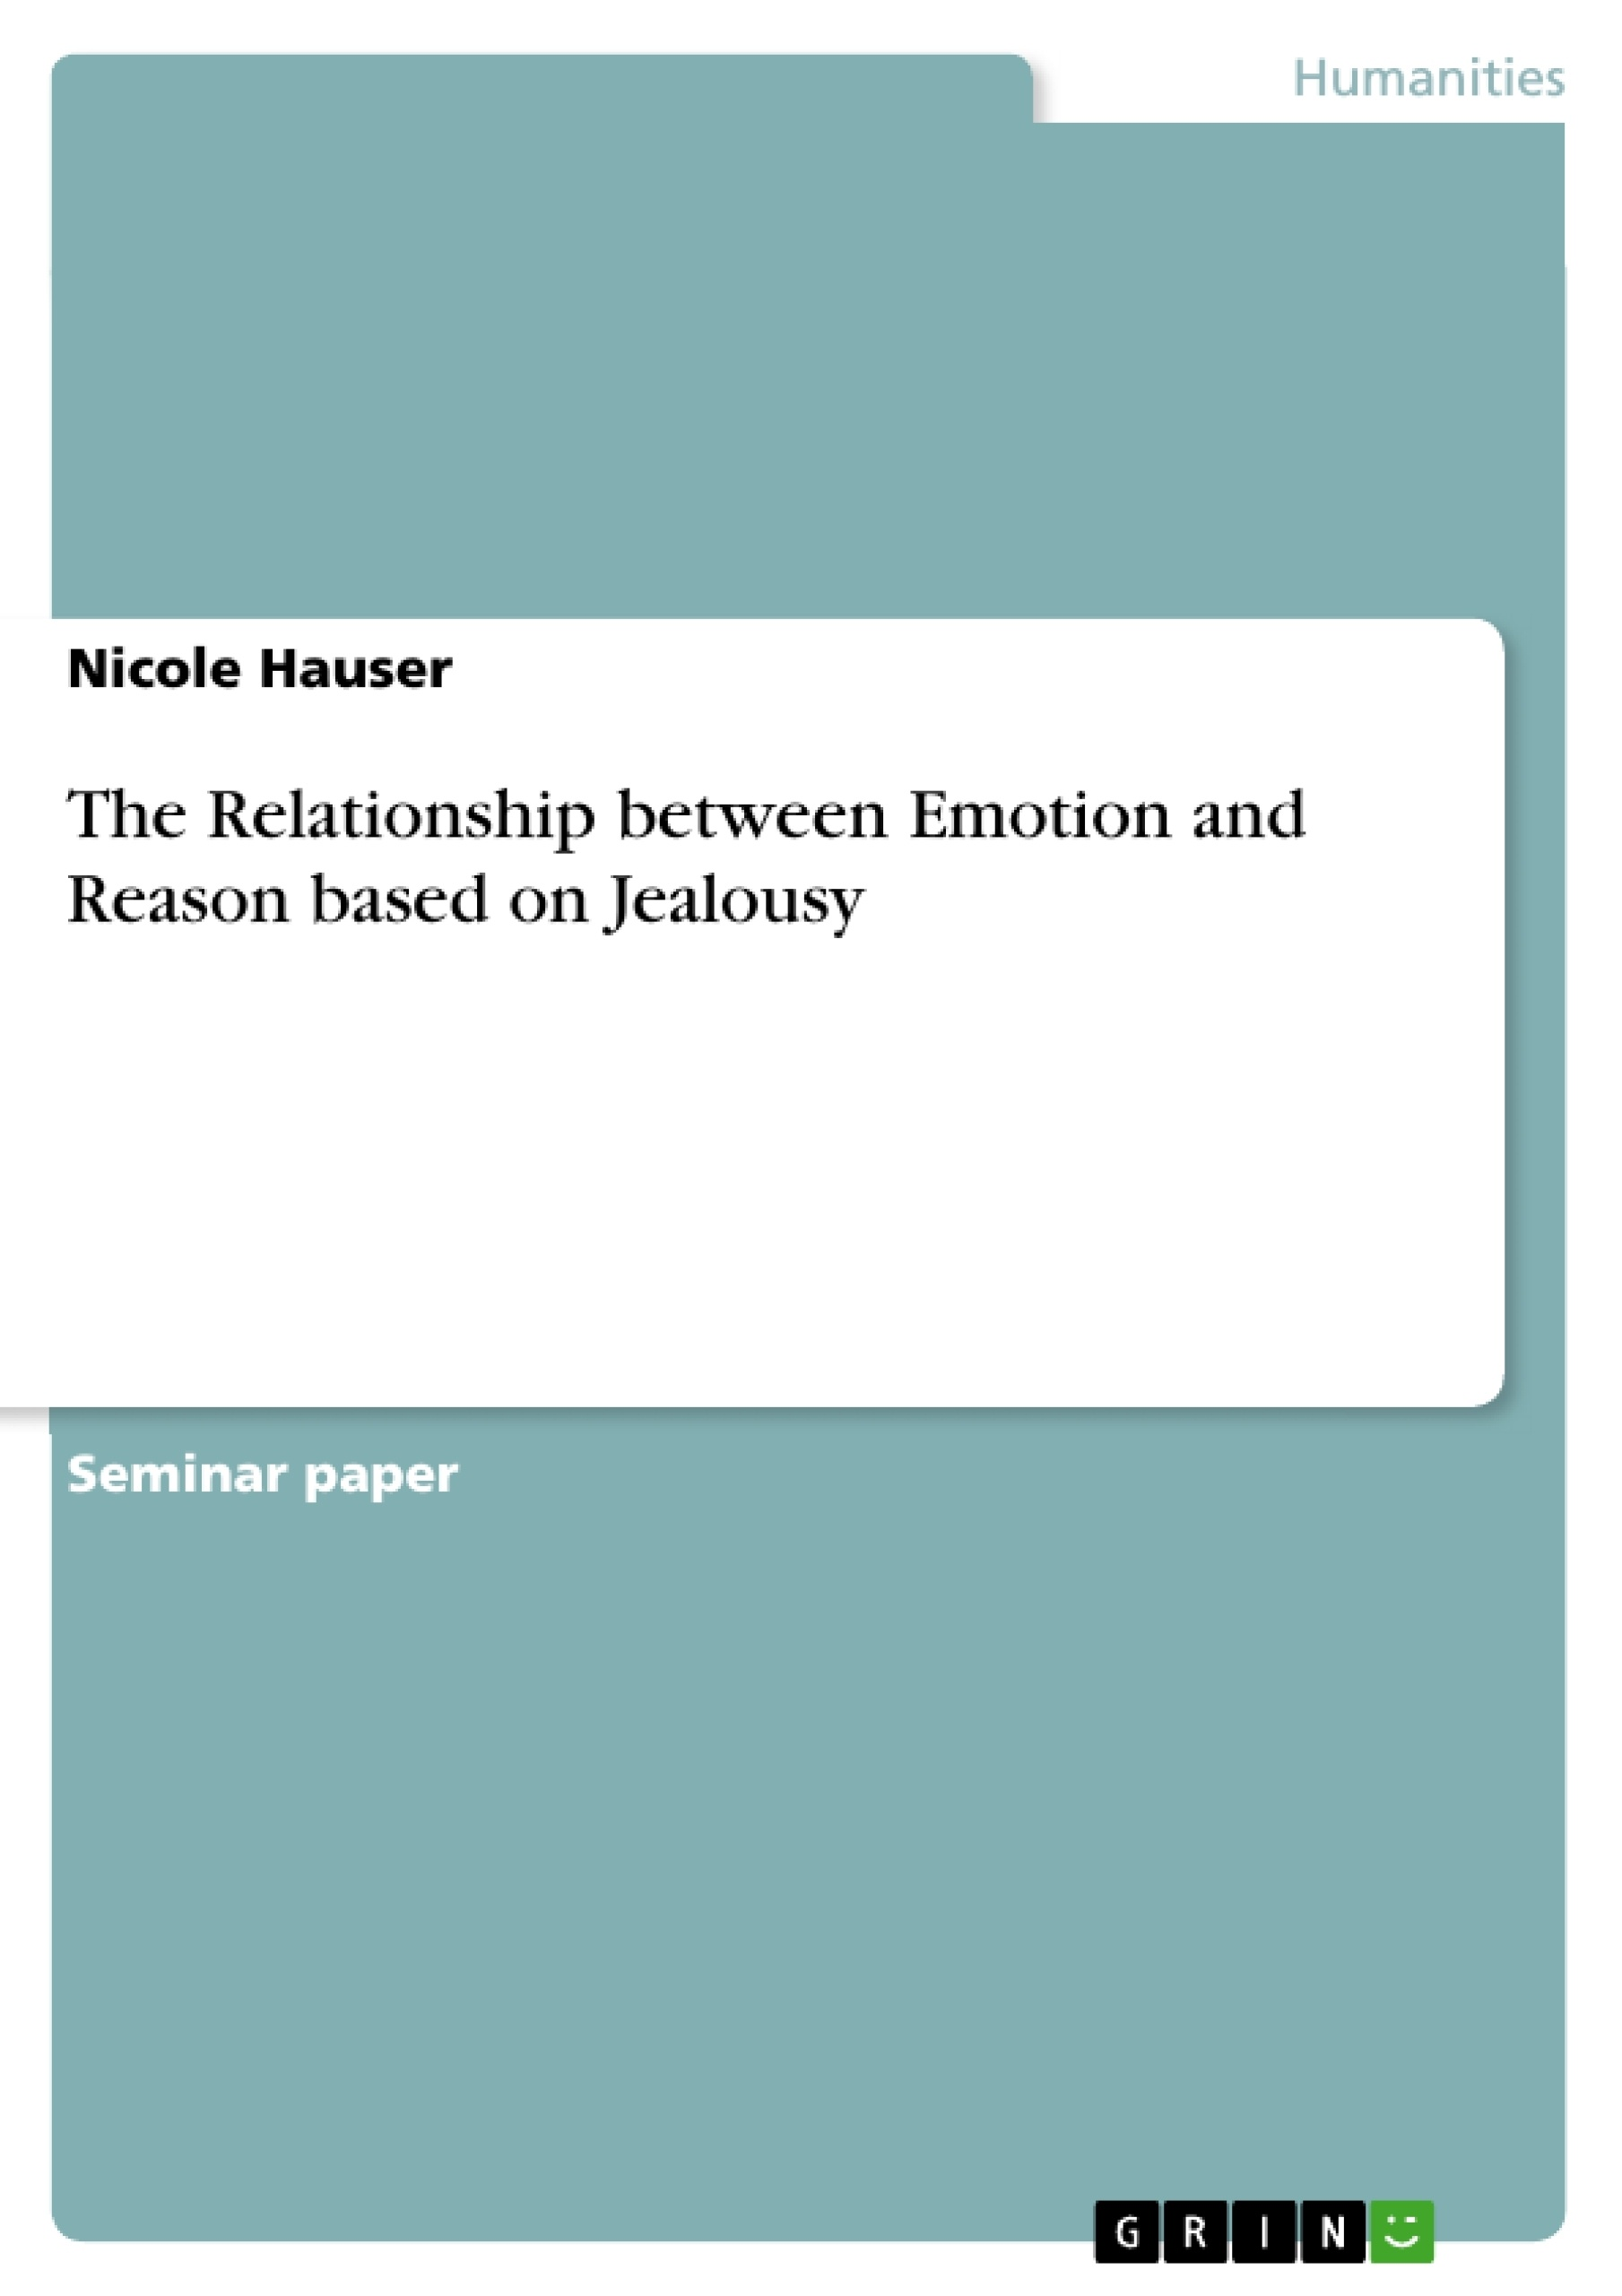 Title: The Relationship between Emotion and Reason based on Jealousy